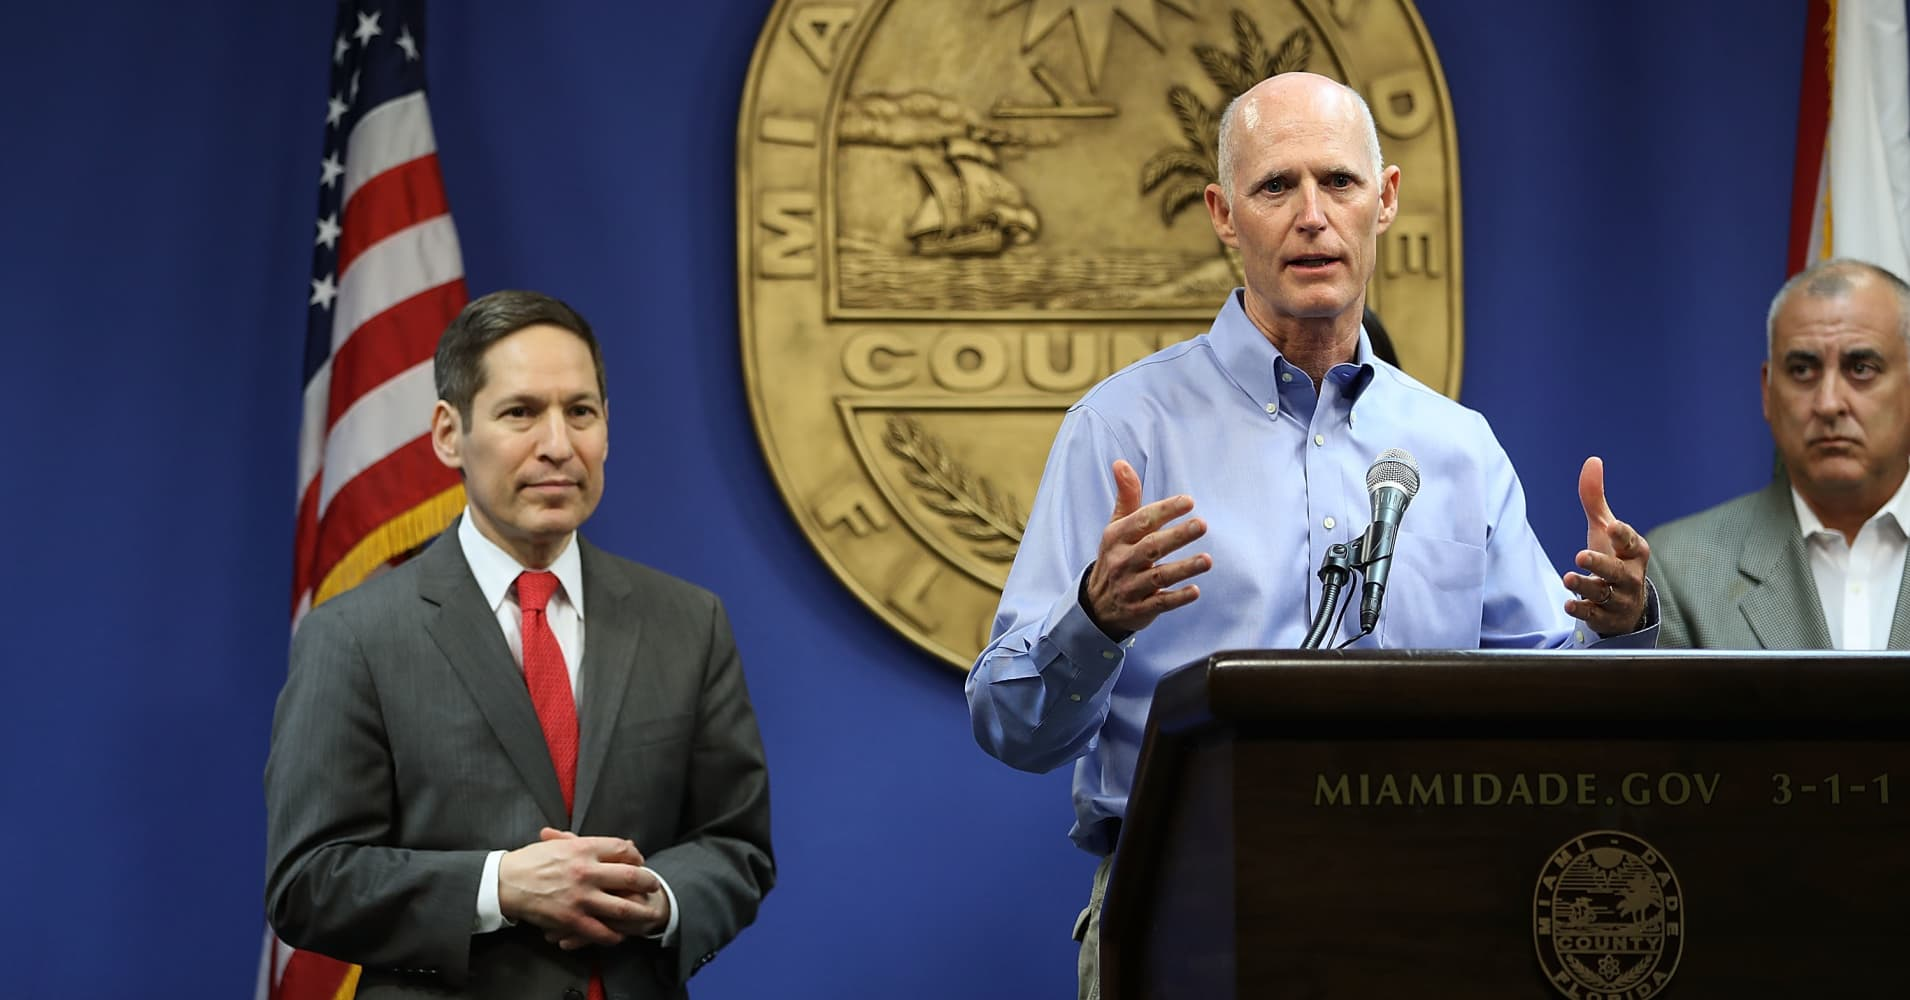 Florida governor confirms Zika transmission in Miami Beach